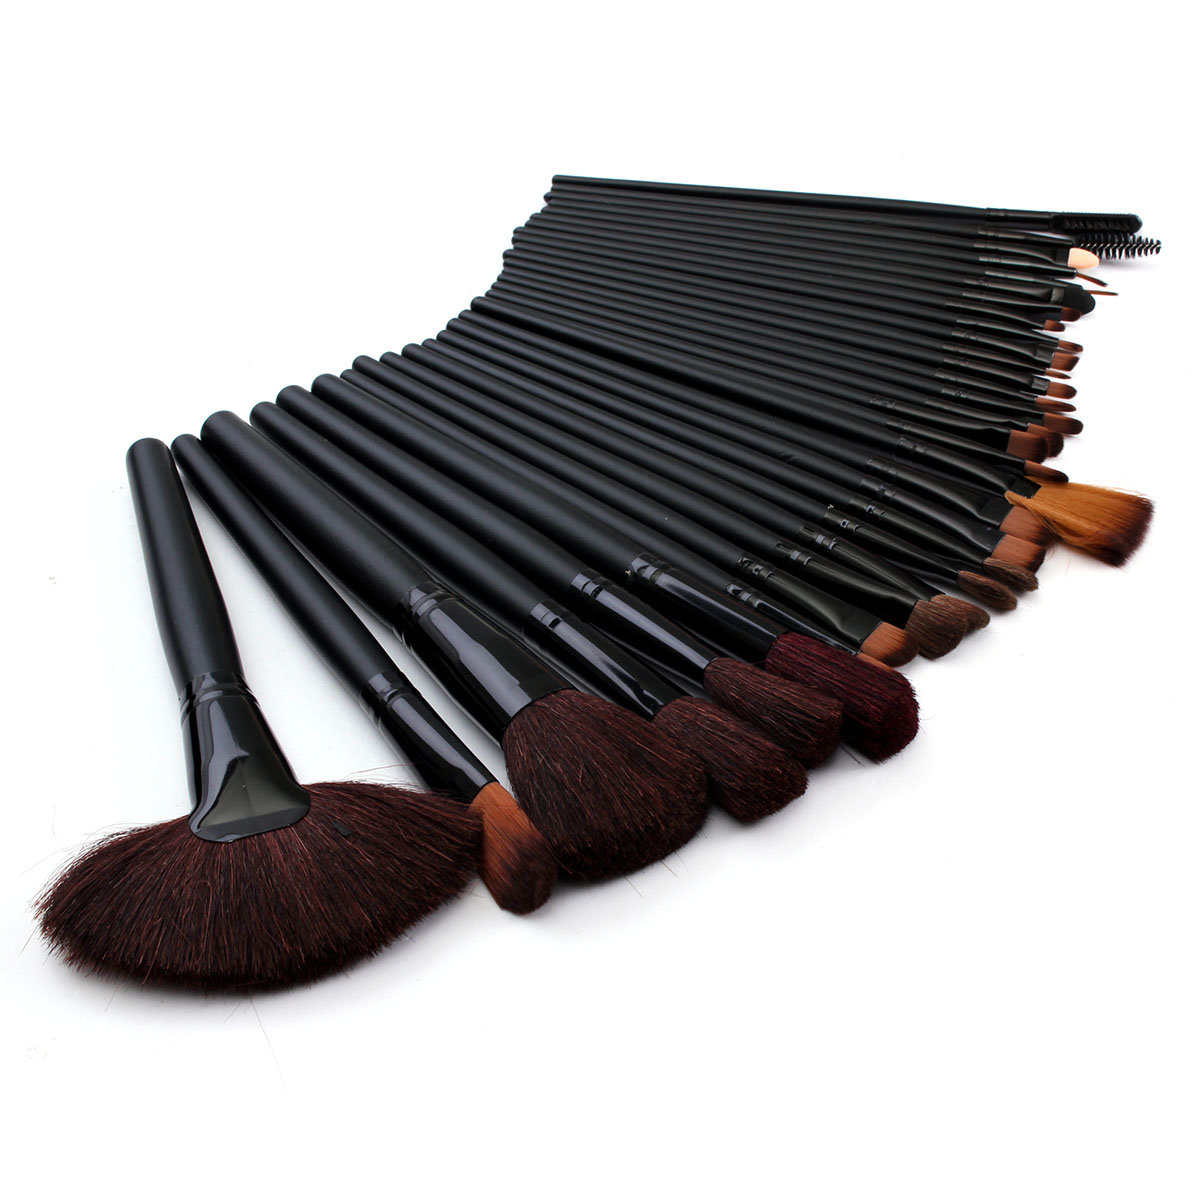 32 Pcs Makeup Brush Set Black Eyeshdow Eyebrow Cosmetic Brushes Kit With Pouch Bag